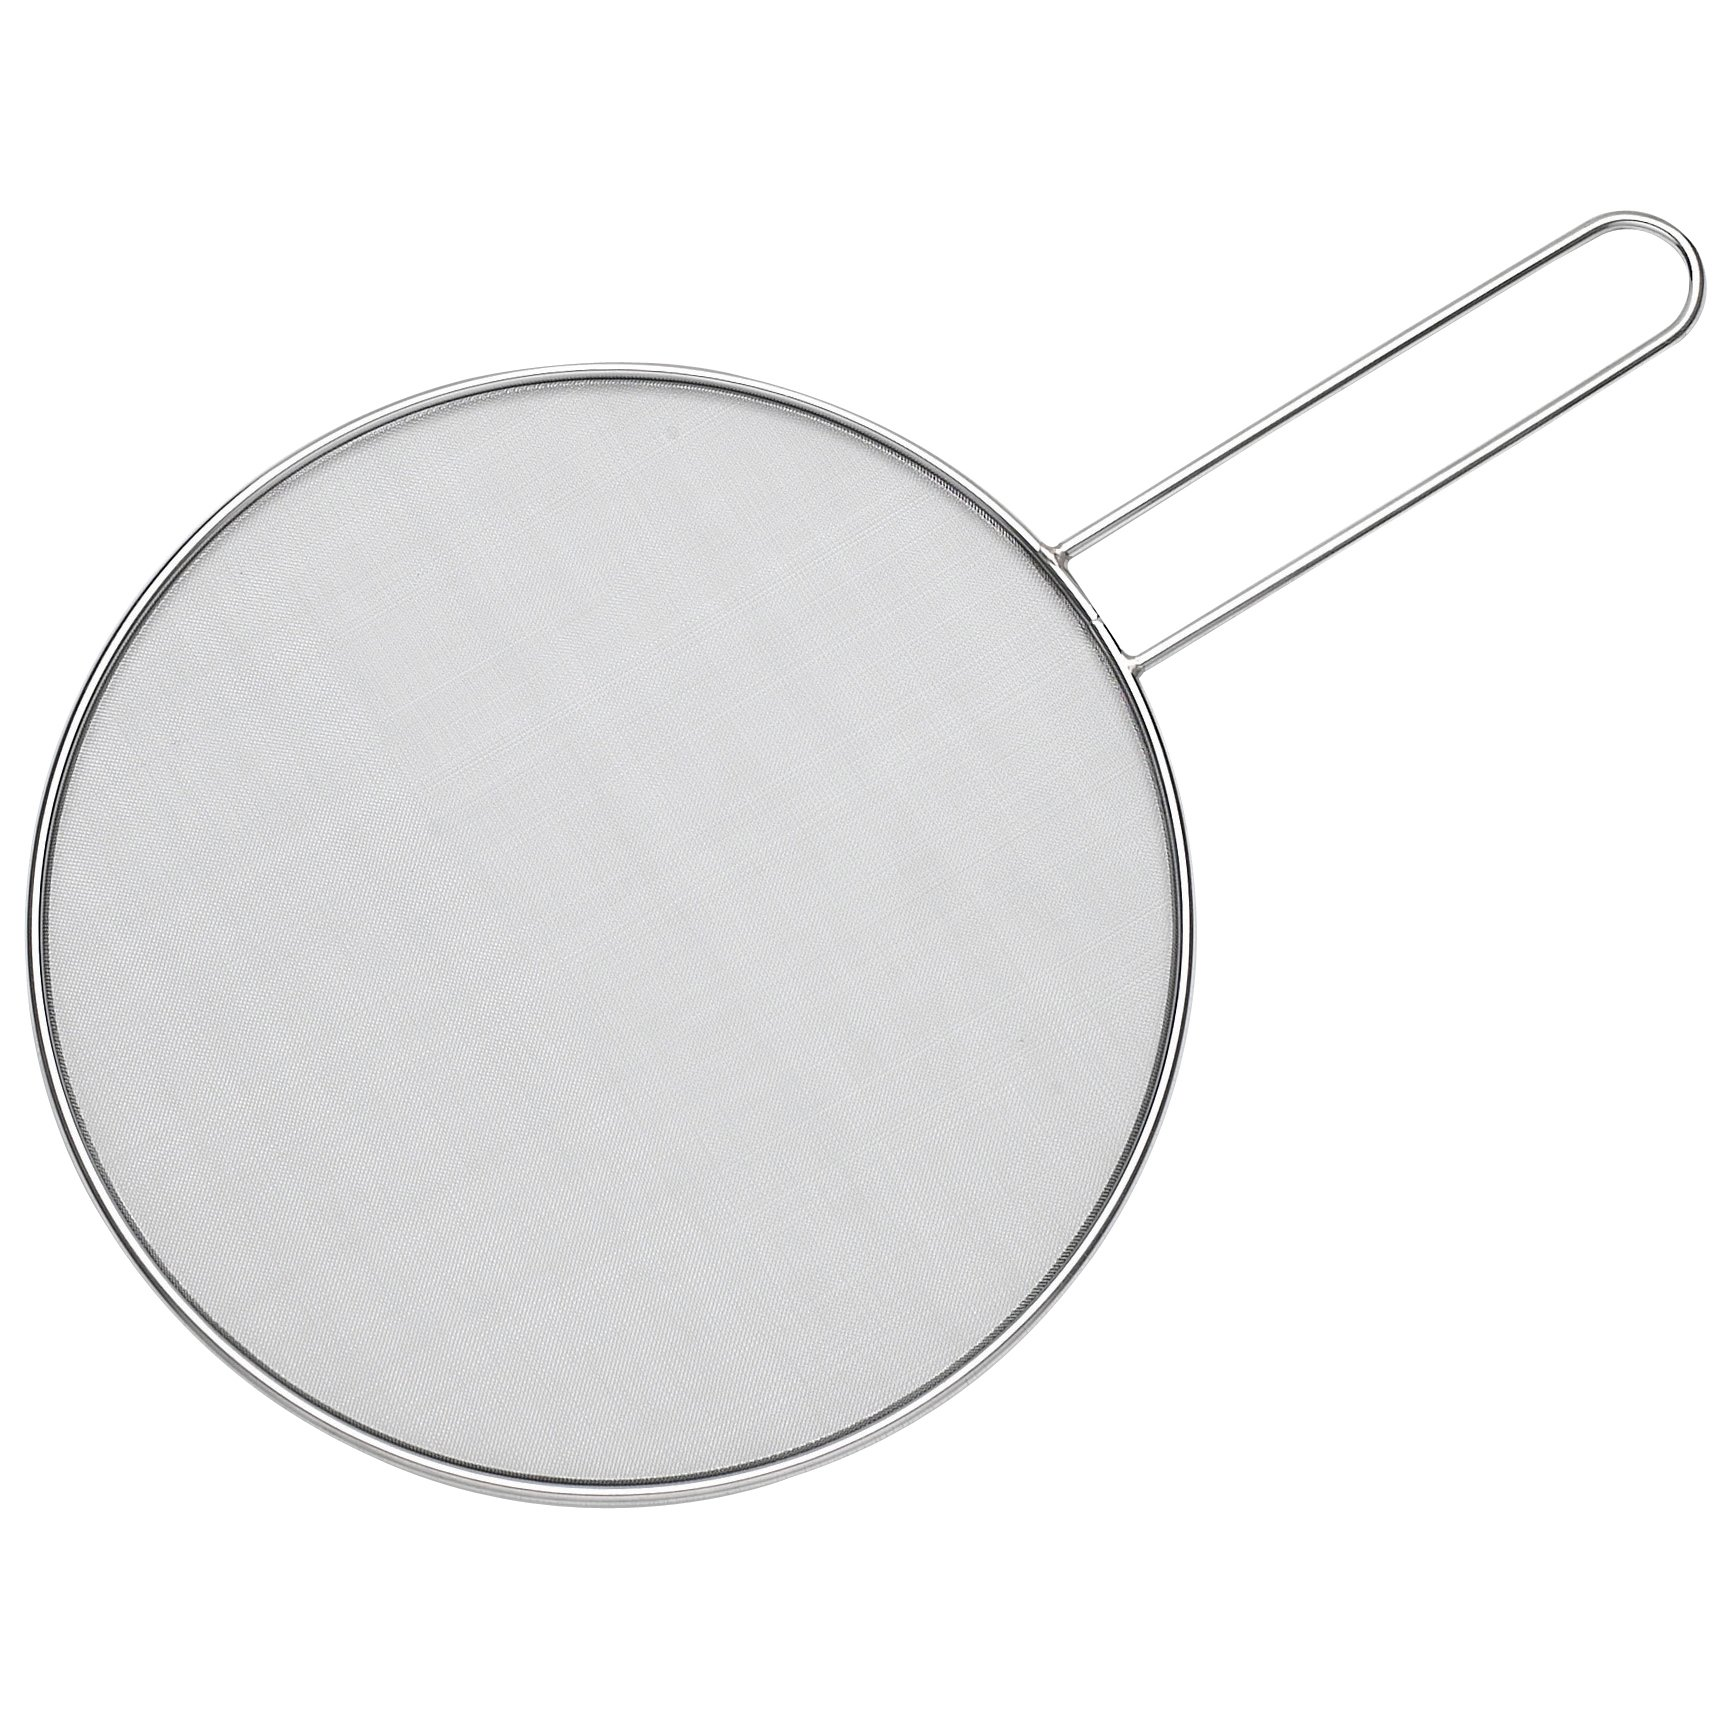 HIC Splatter Screen Guard Strainer, 18/8 Stainless Steel, Fine Mesh, 11-Inches